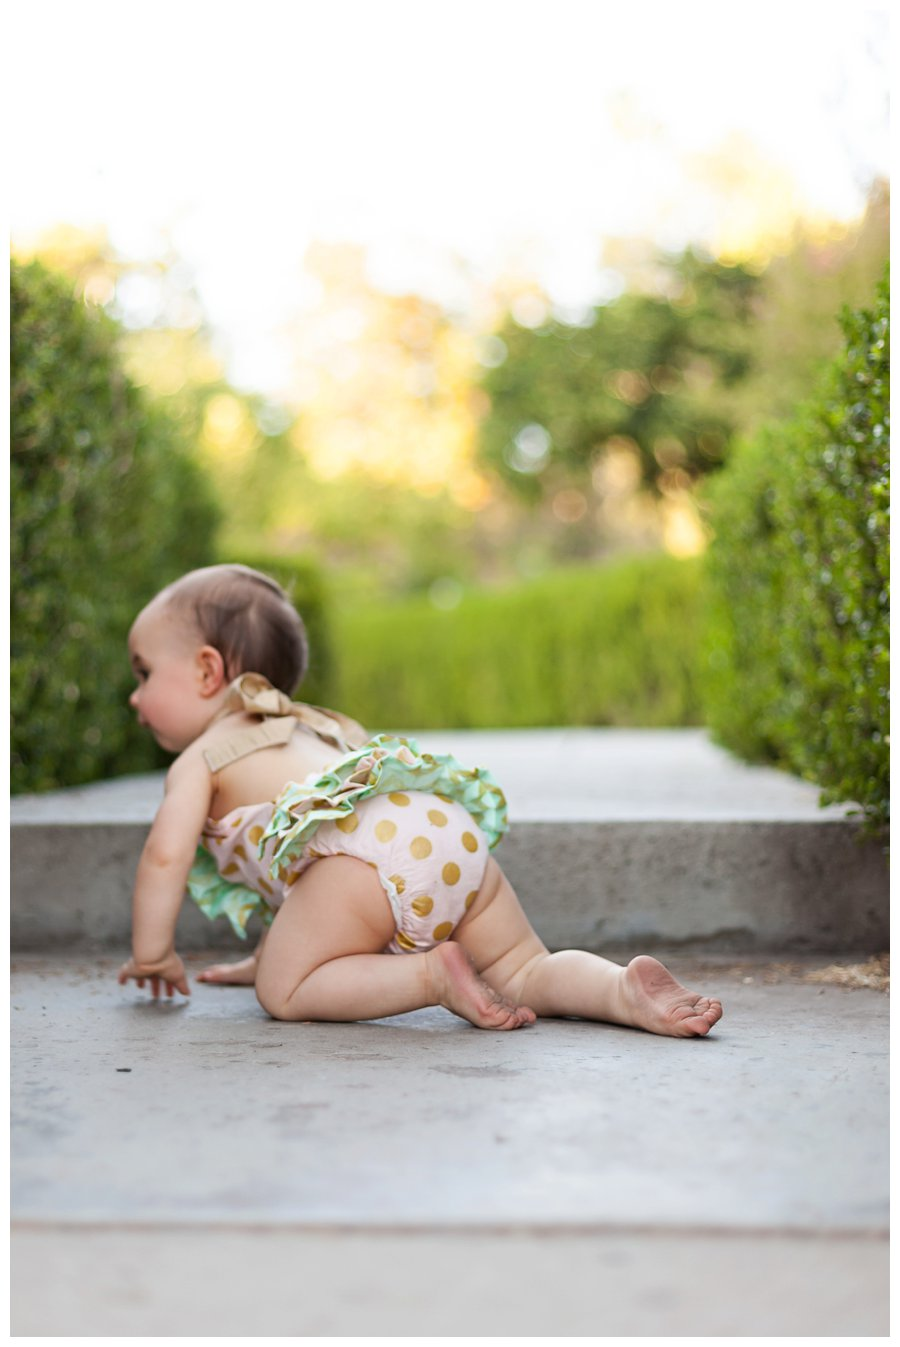 One Year Old Baby Portraits by Just Maggie Photography - Los Angeles Baby Photographer